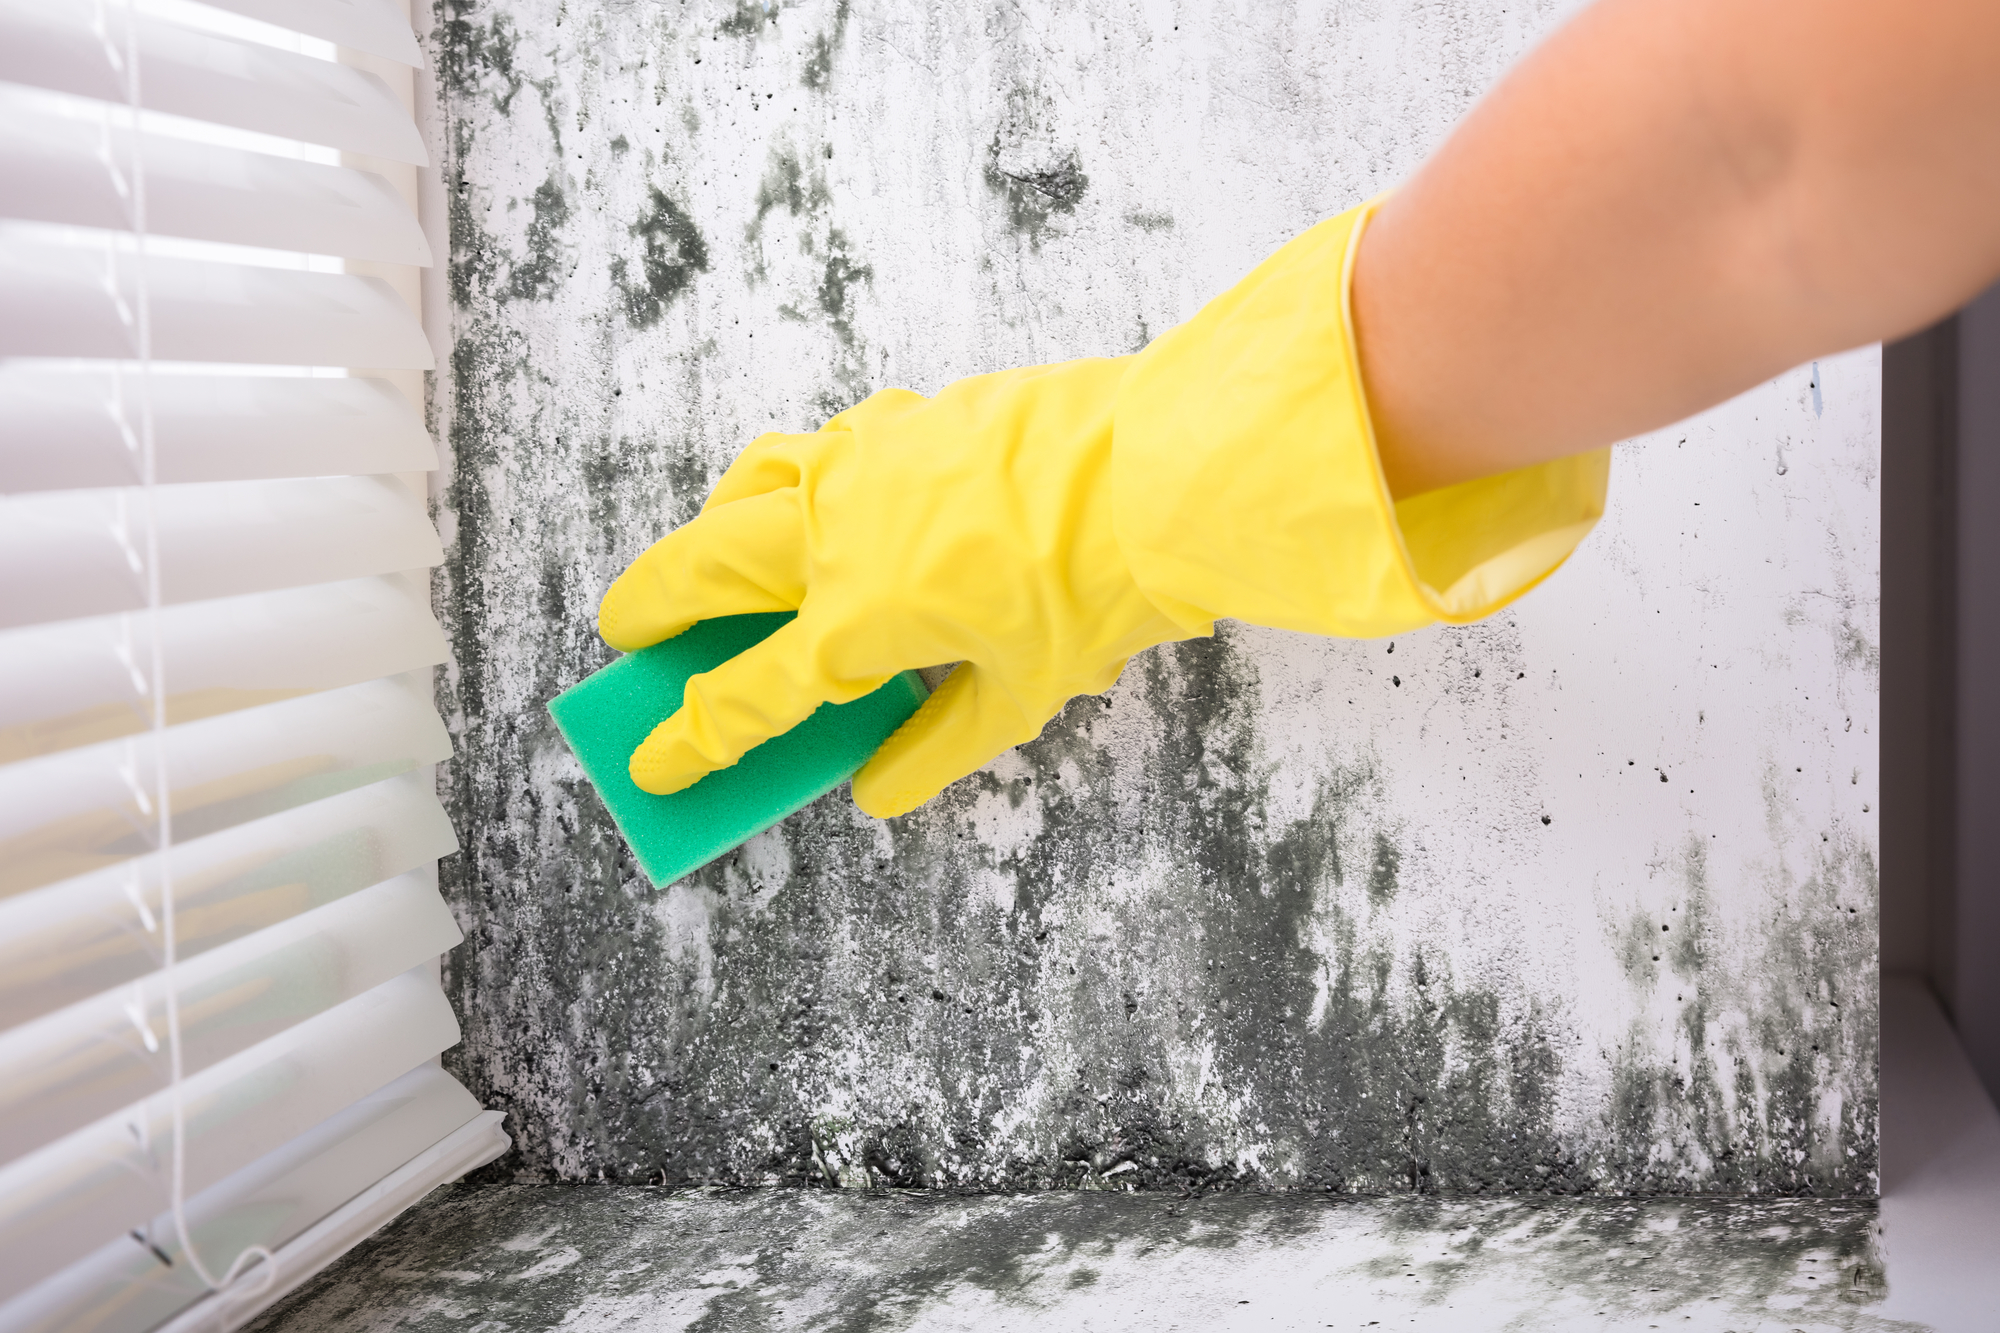 MOLD COMPANY STAYS UPDATED IN ORDER TO PROVIDE THE MOST PROFESSIONAL SERVICE TO ITS CUSTOMERS